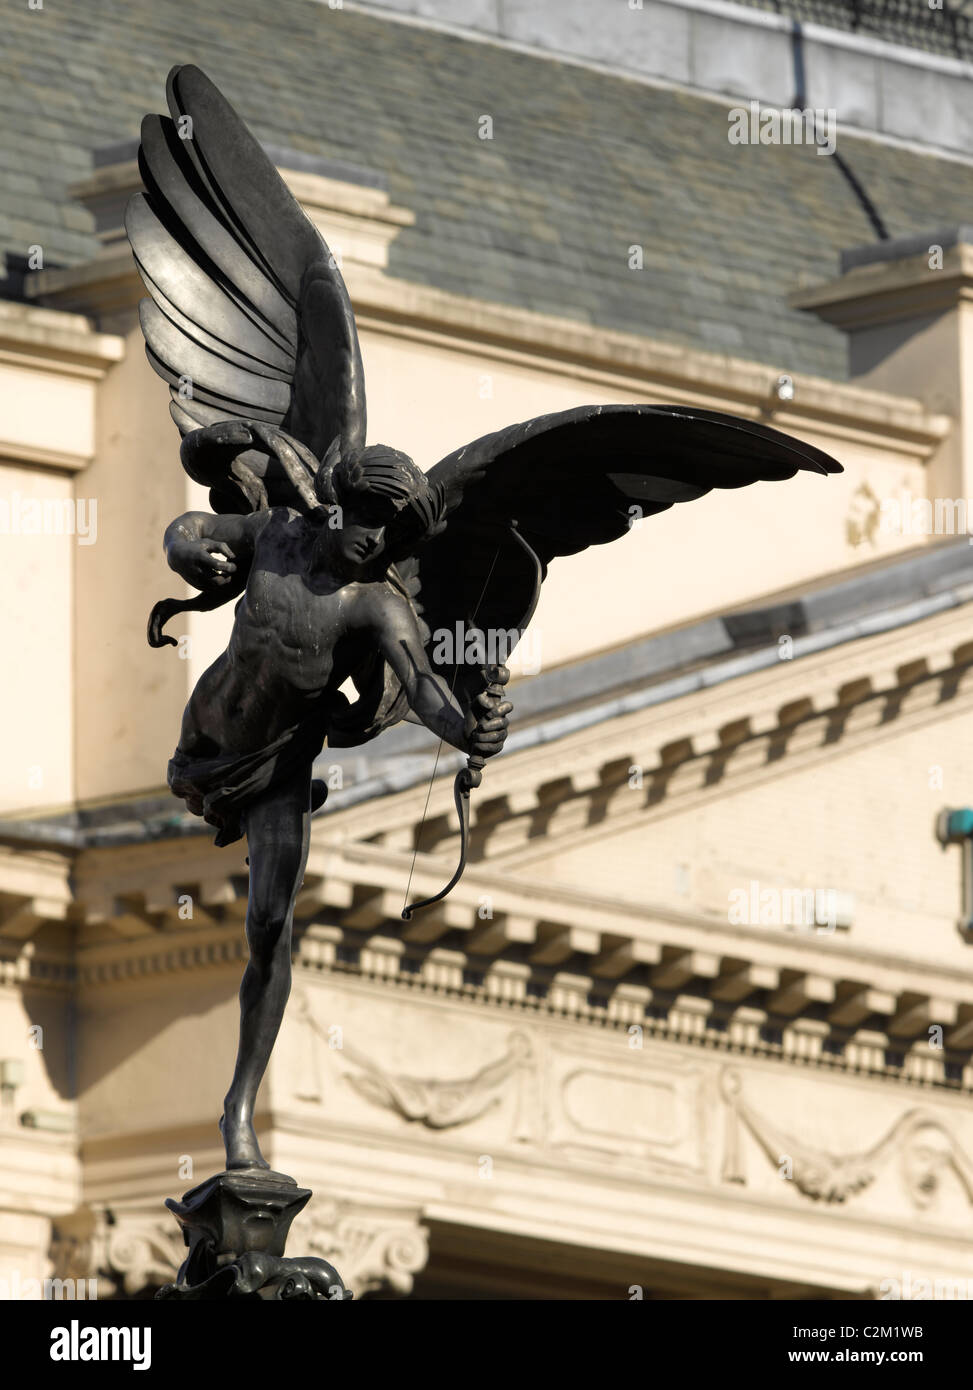 Anteros Statue, Shaftesbury Monument Memorial Fountain, Piccadilly, London. - Stock Image